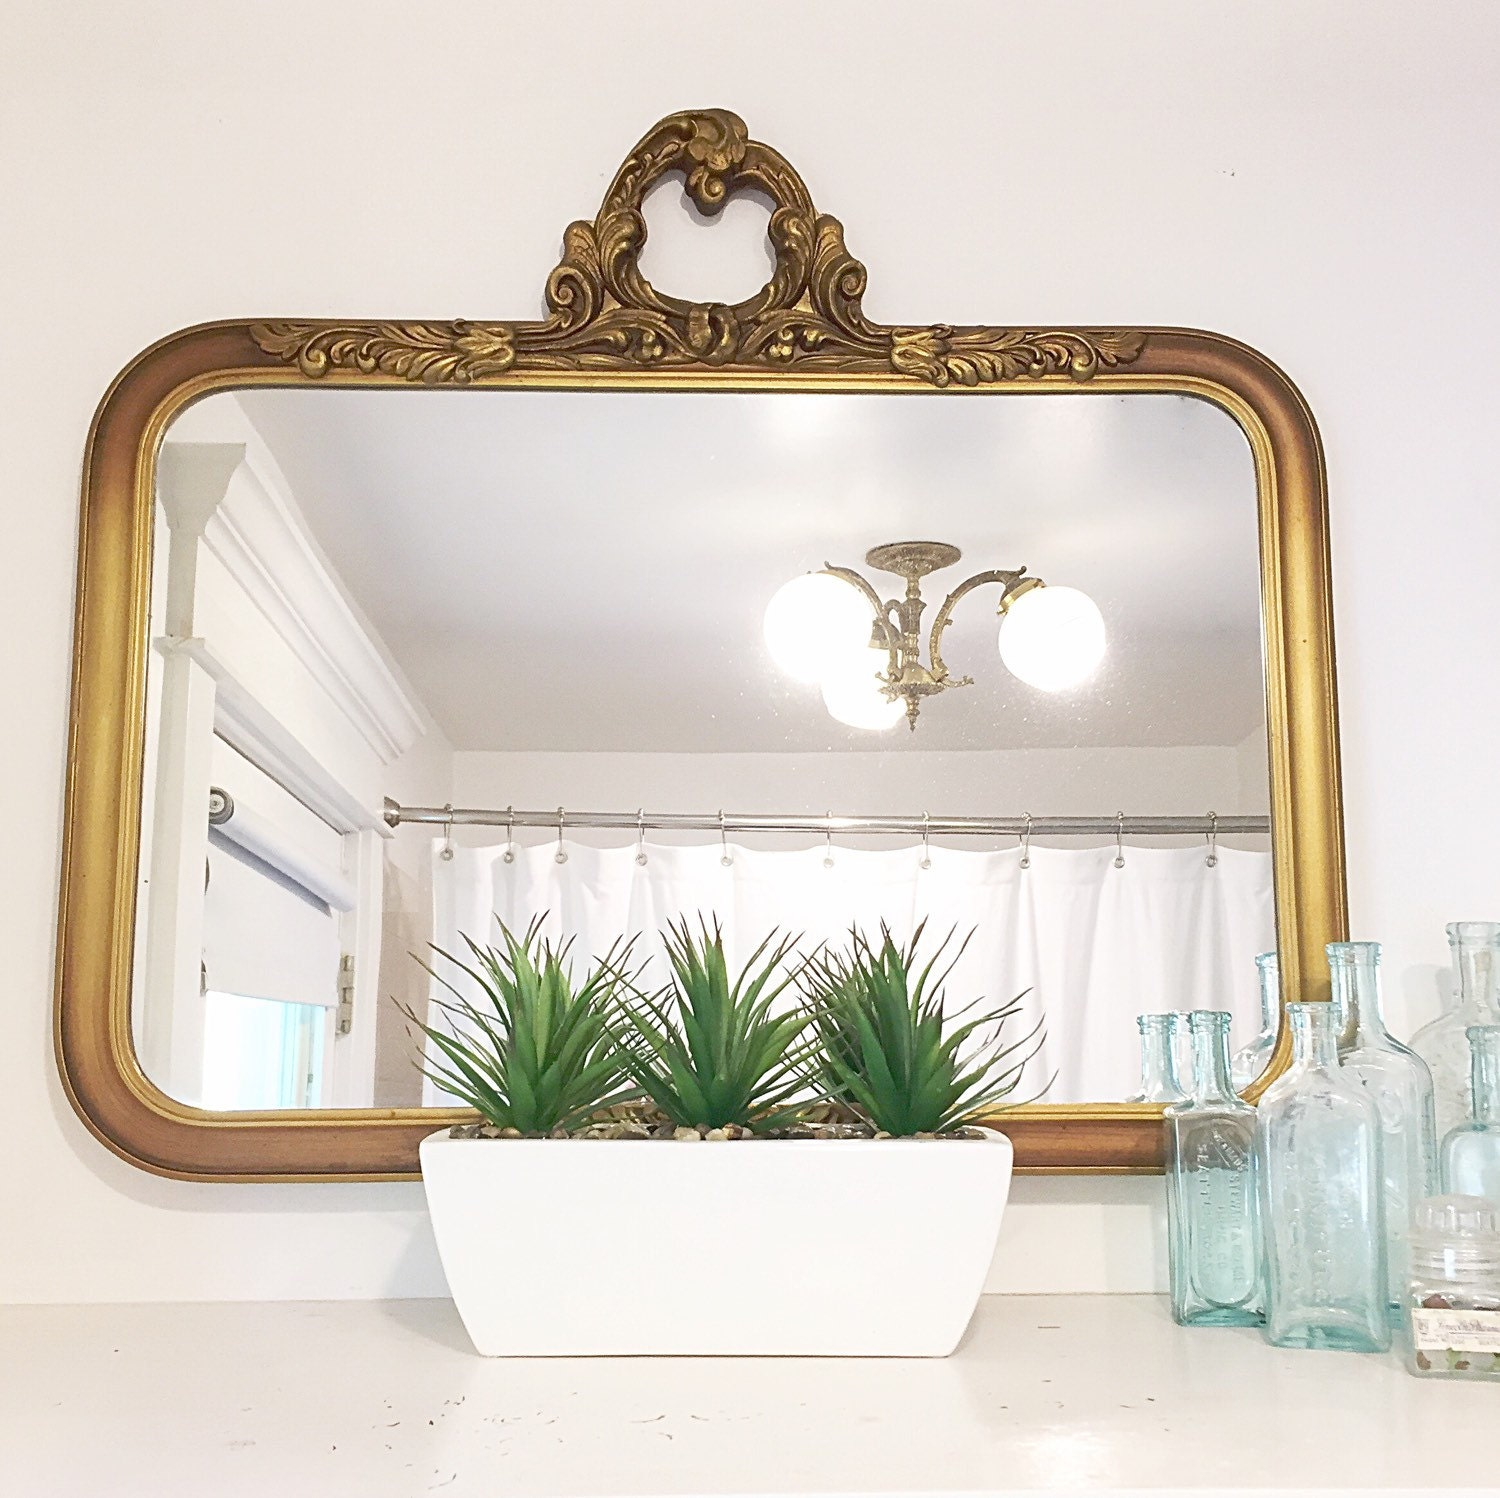 vintage bathroom mirror antique mirror gold gilt frame bathroom mirror ornate wood 14961